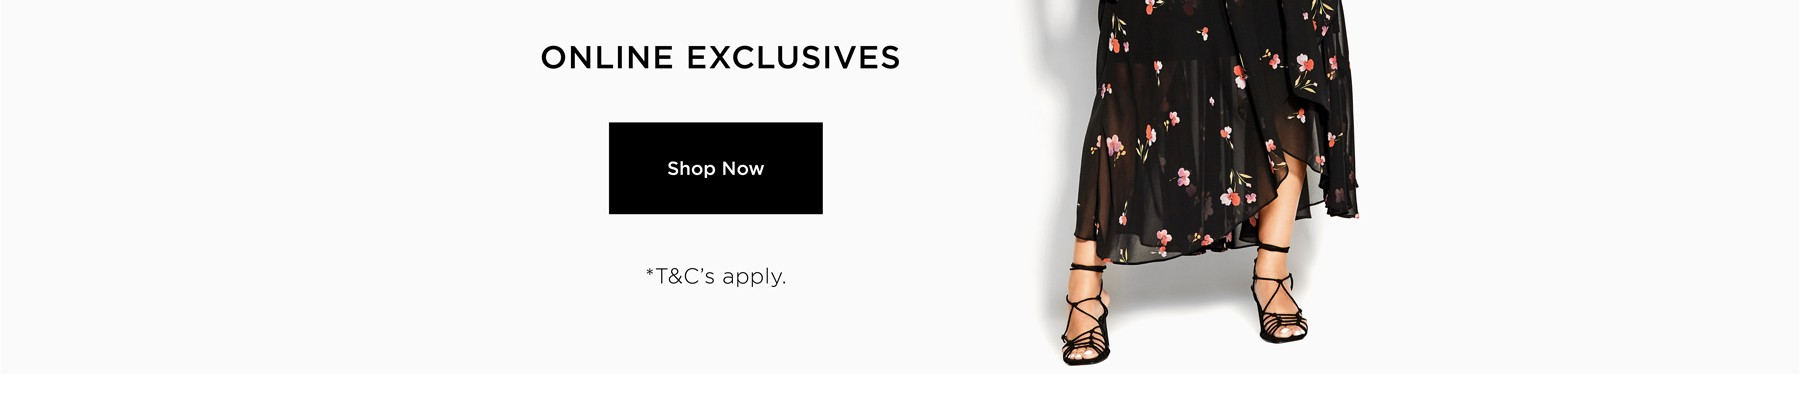 Up to 30% Off* Online Exclusives